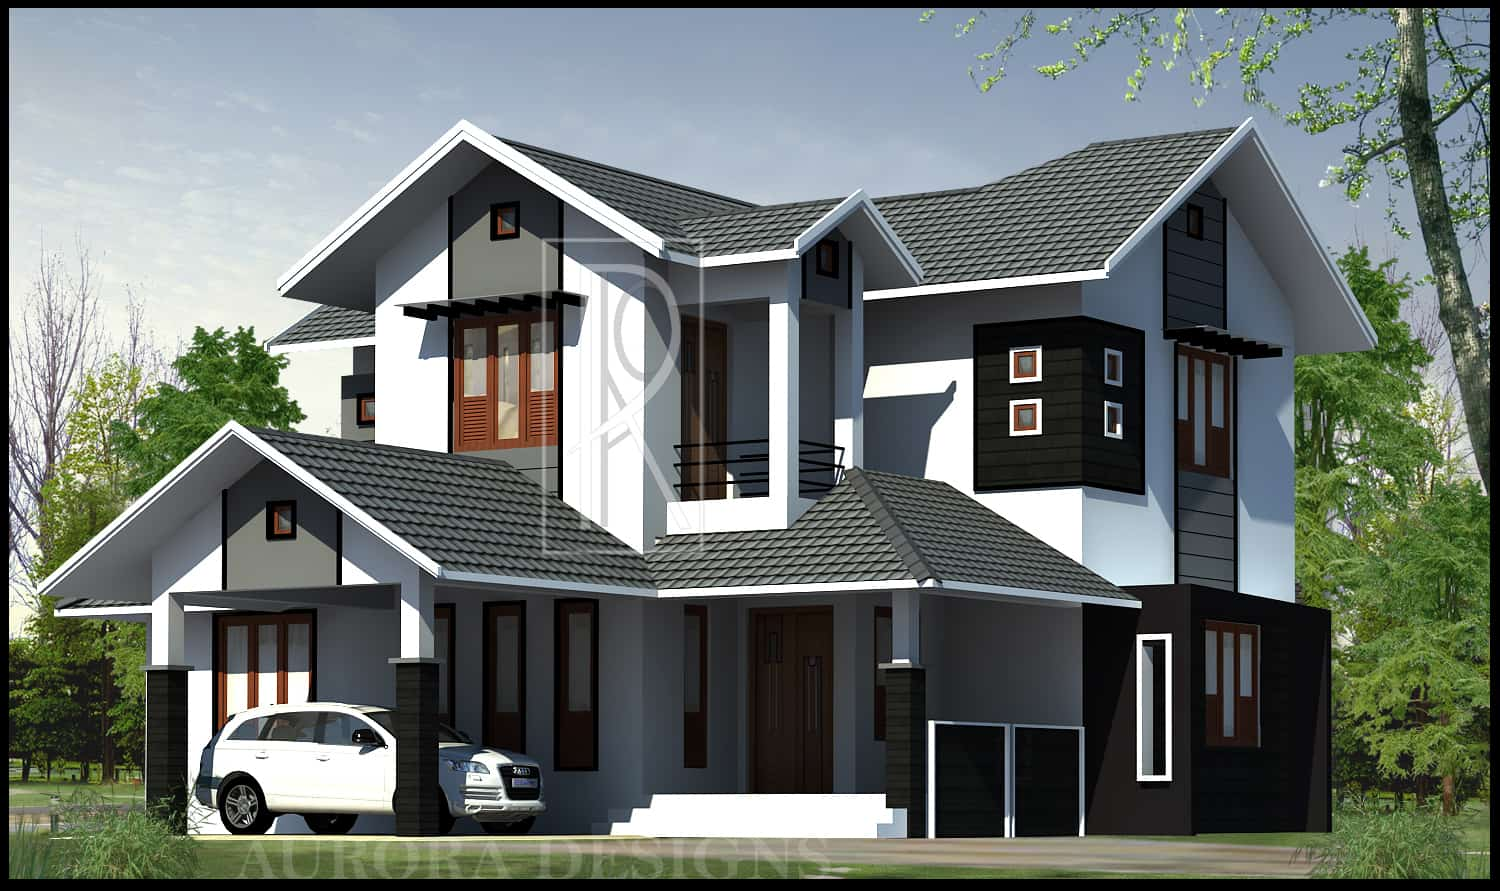 3 bedroom kerala home design at 1873 On 4 bedroom house pictures